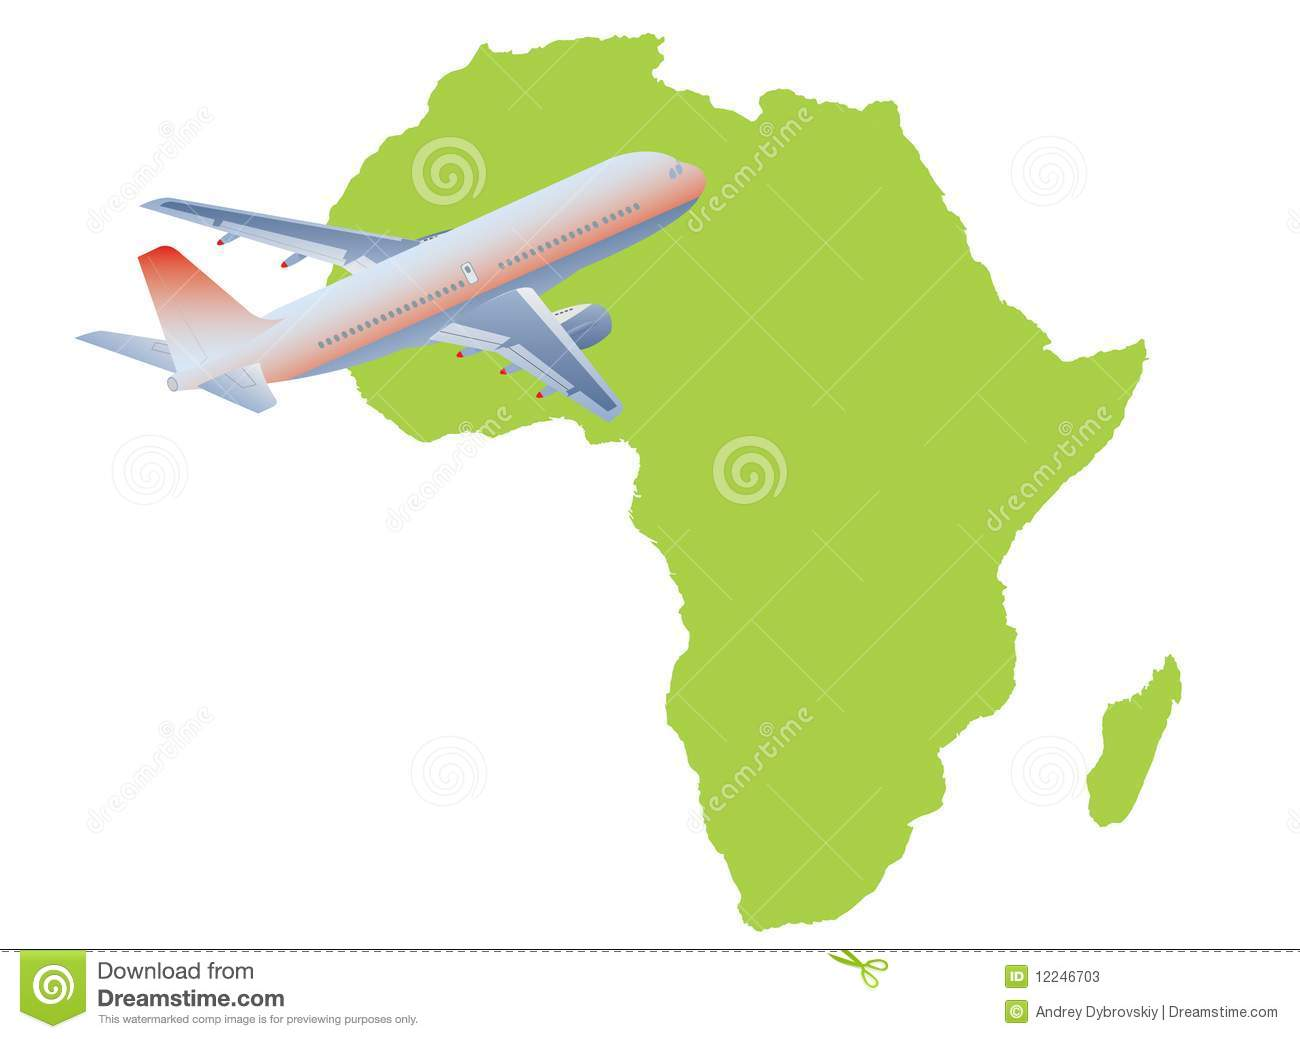 Jet Plane Flying Up With Africa Map Stock Vector   Illustration of